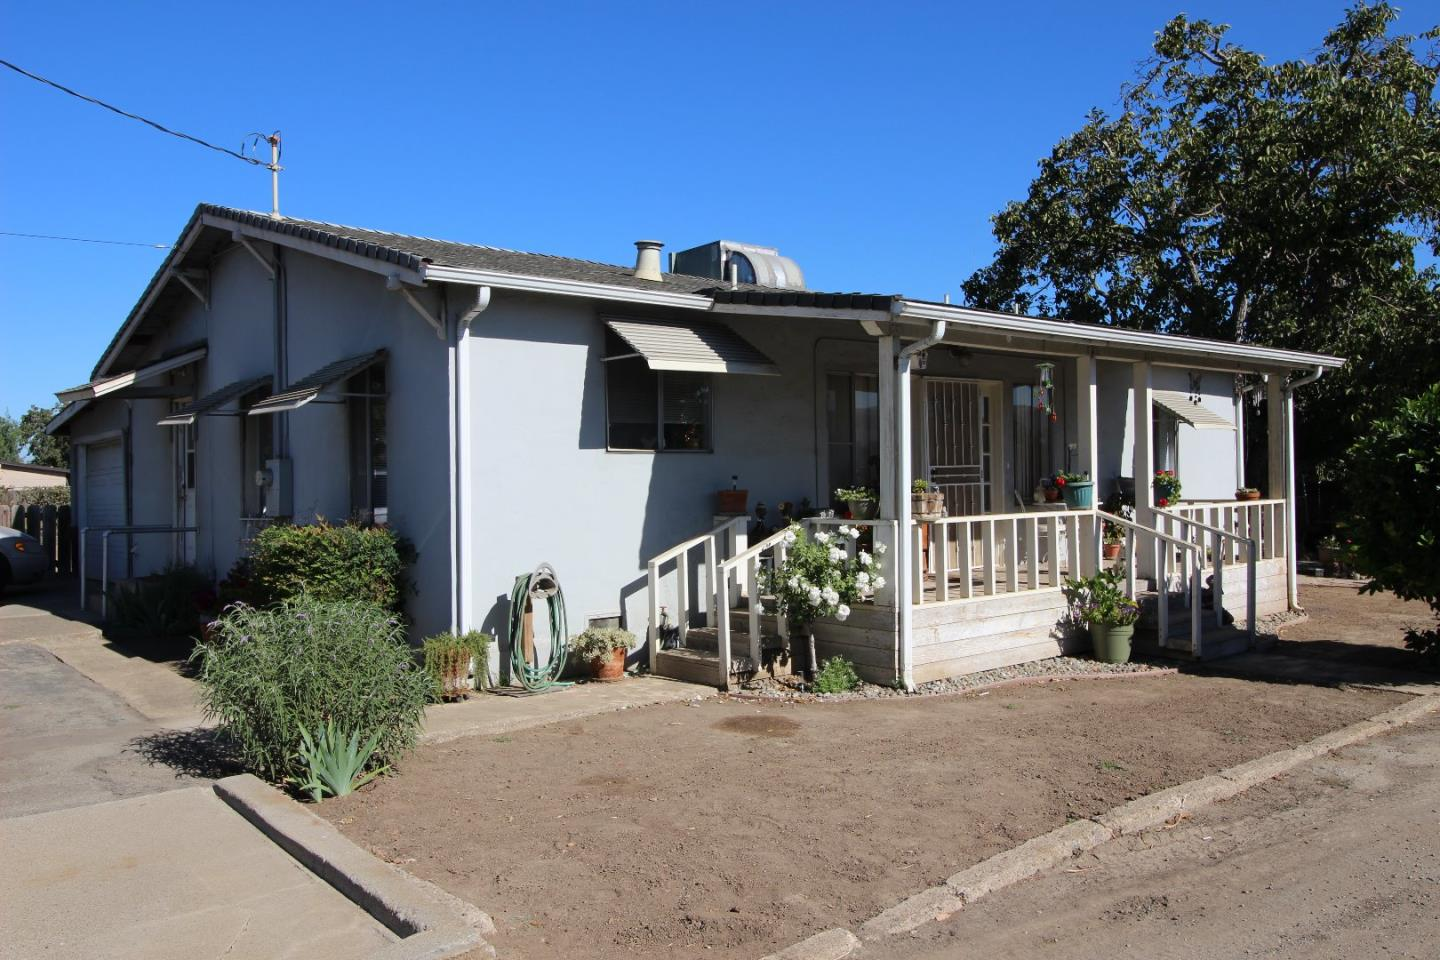 2025 Pacheco Pass Hwy, Gilroy CA 95020 - Photo 1